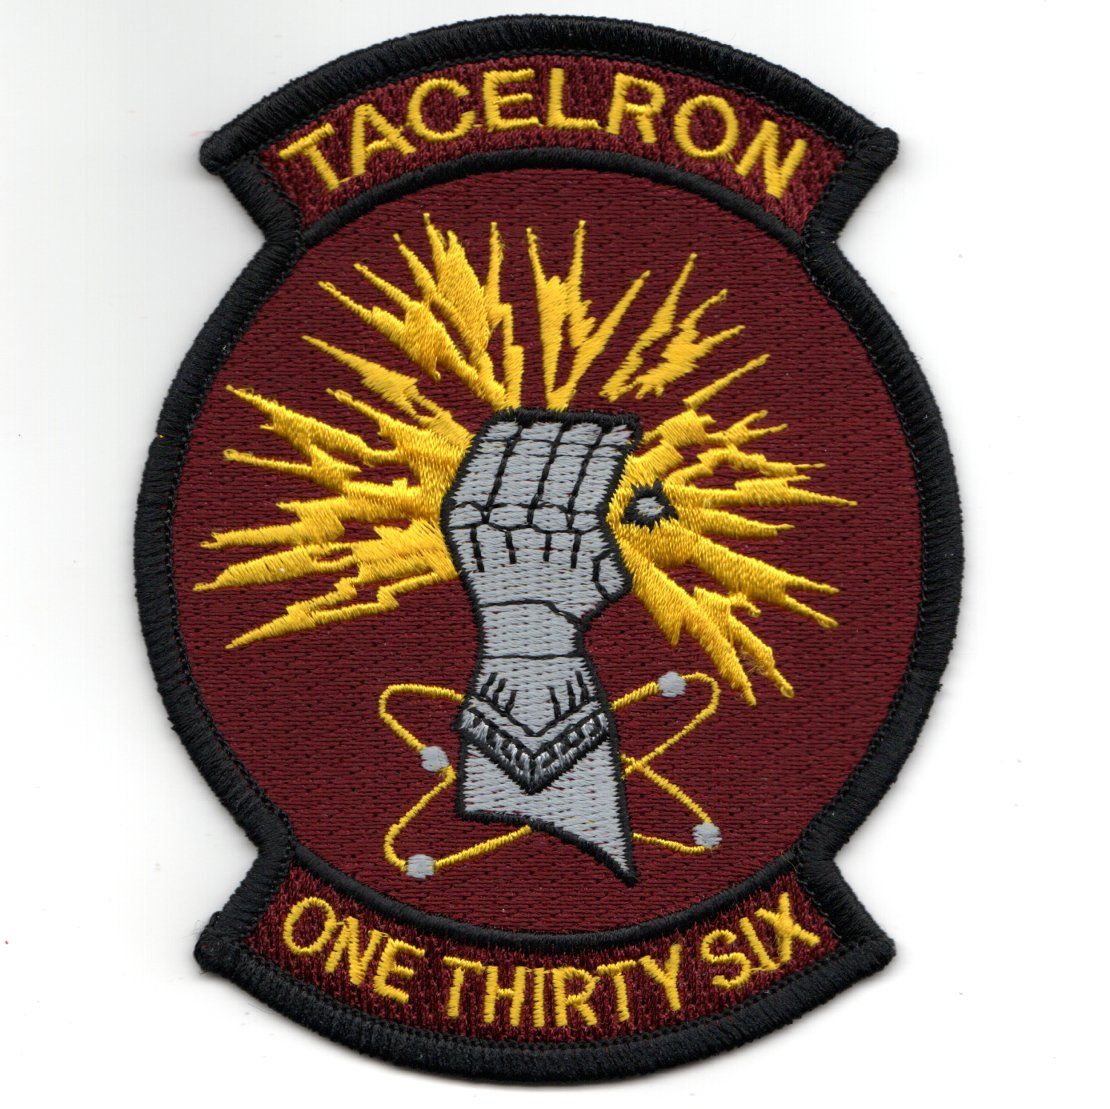 VAQ-136 'TACELRON' Squadron Patch (Maroon)